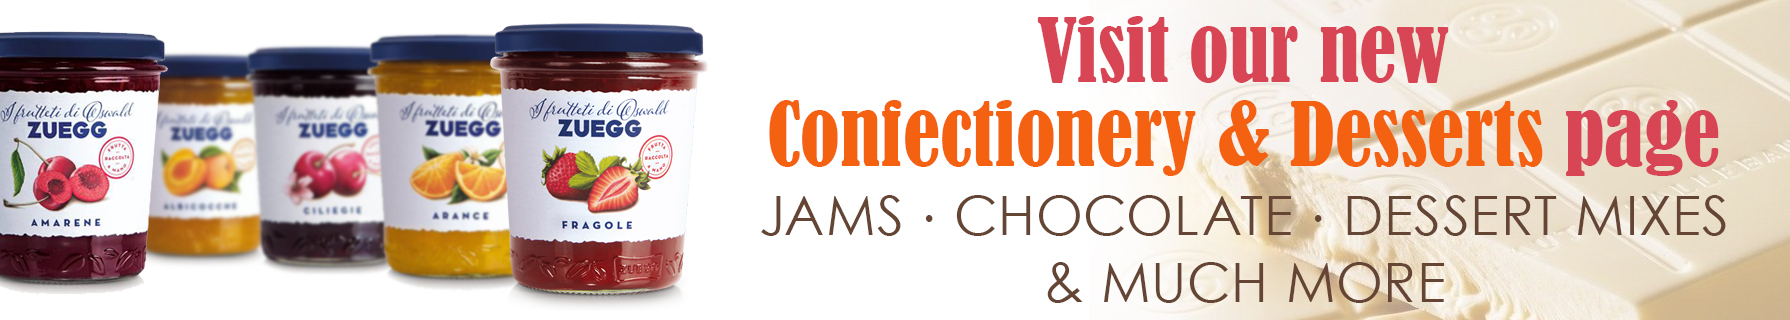 Confectionary and desserts